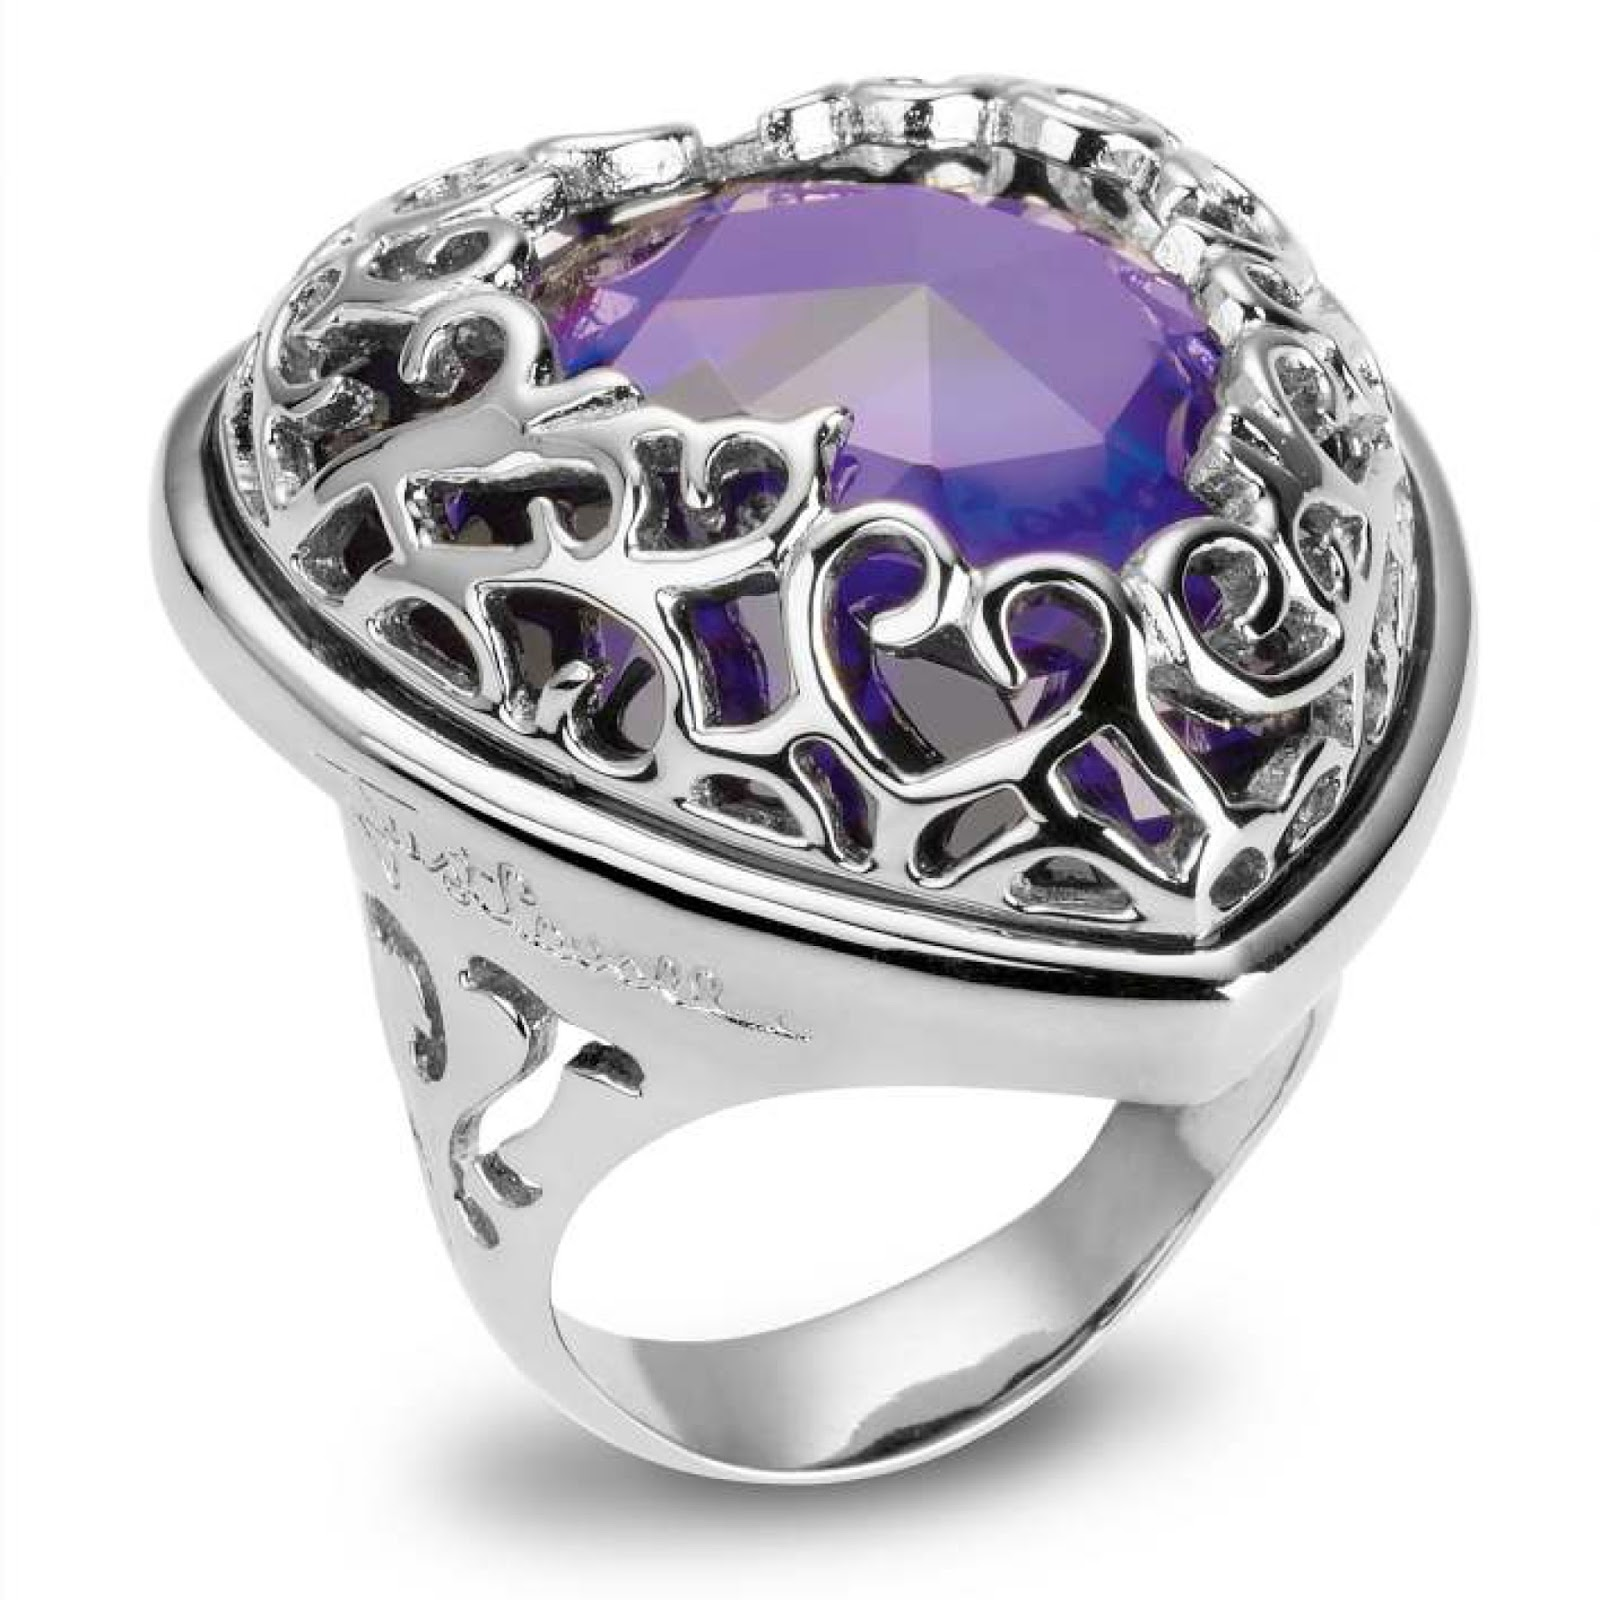 gothic wedding rings for women many types of gothic promise - Goth Wedding Rings